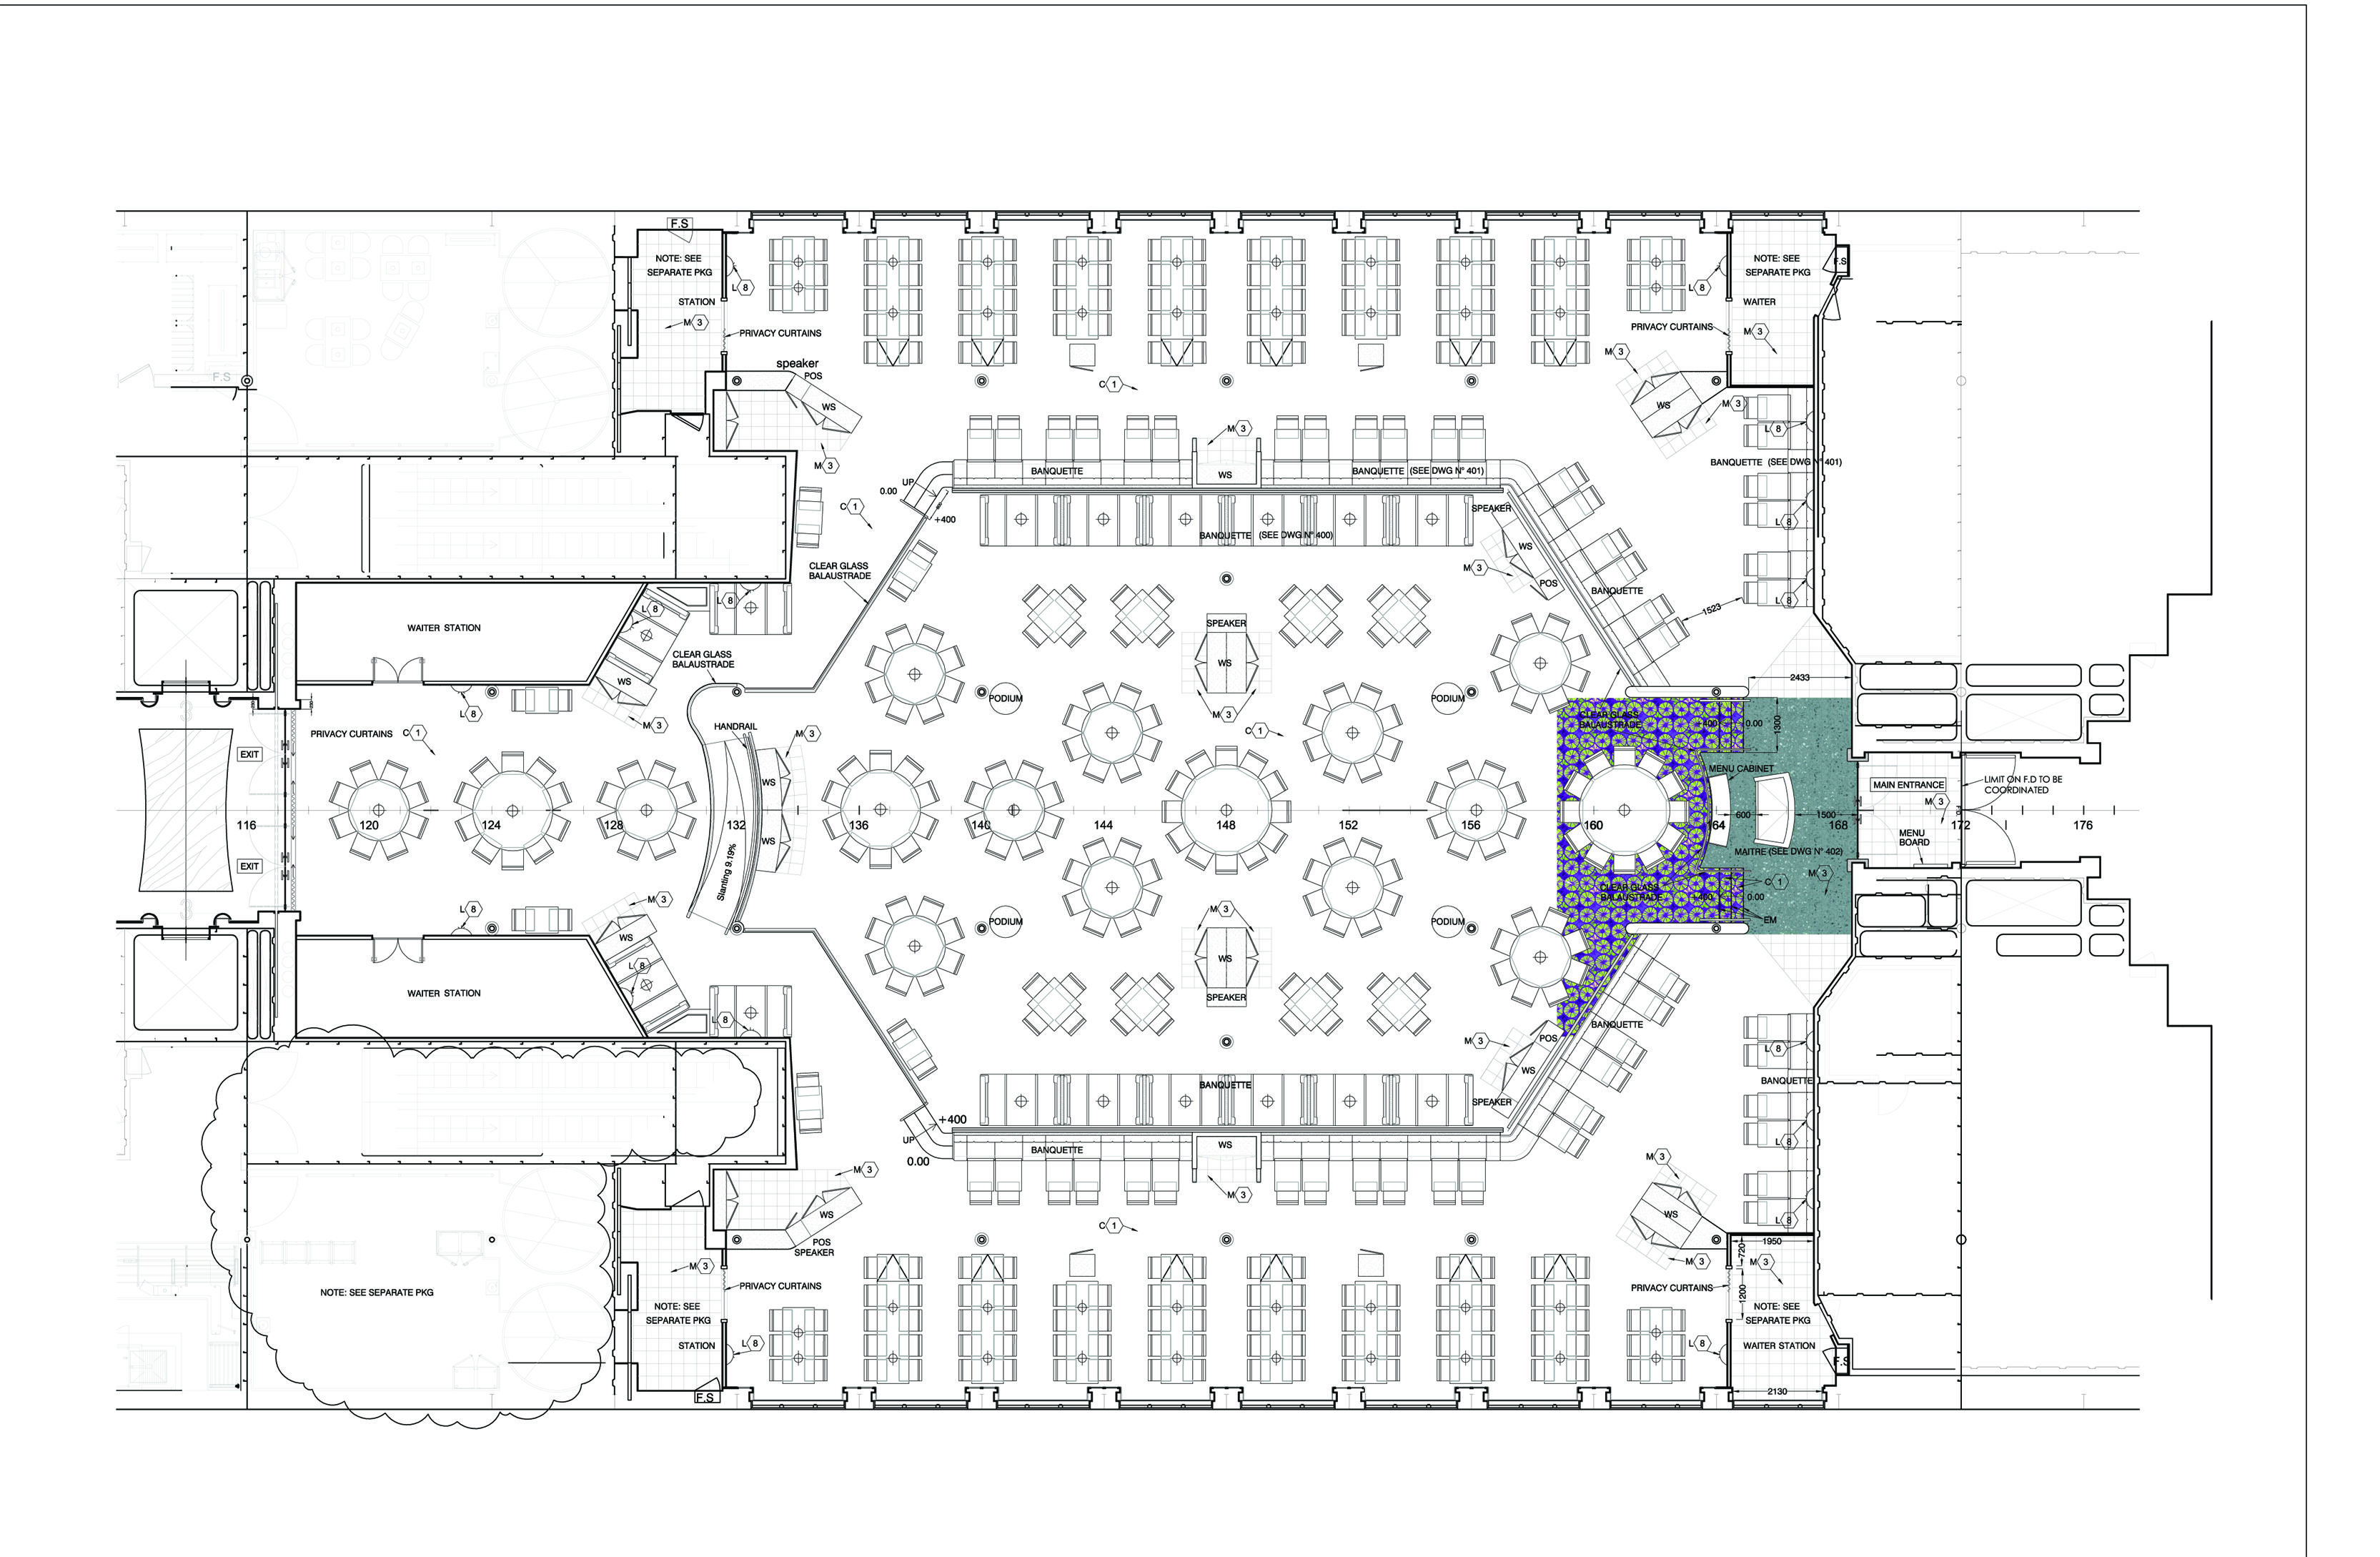 Restaurant Floor Plan Layout: 65_FORWARD MAIN RESTAURANT FLOOR PLAN DK3_DESTINY.jpg